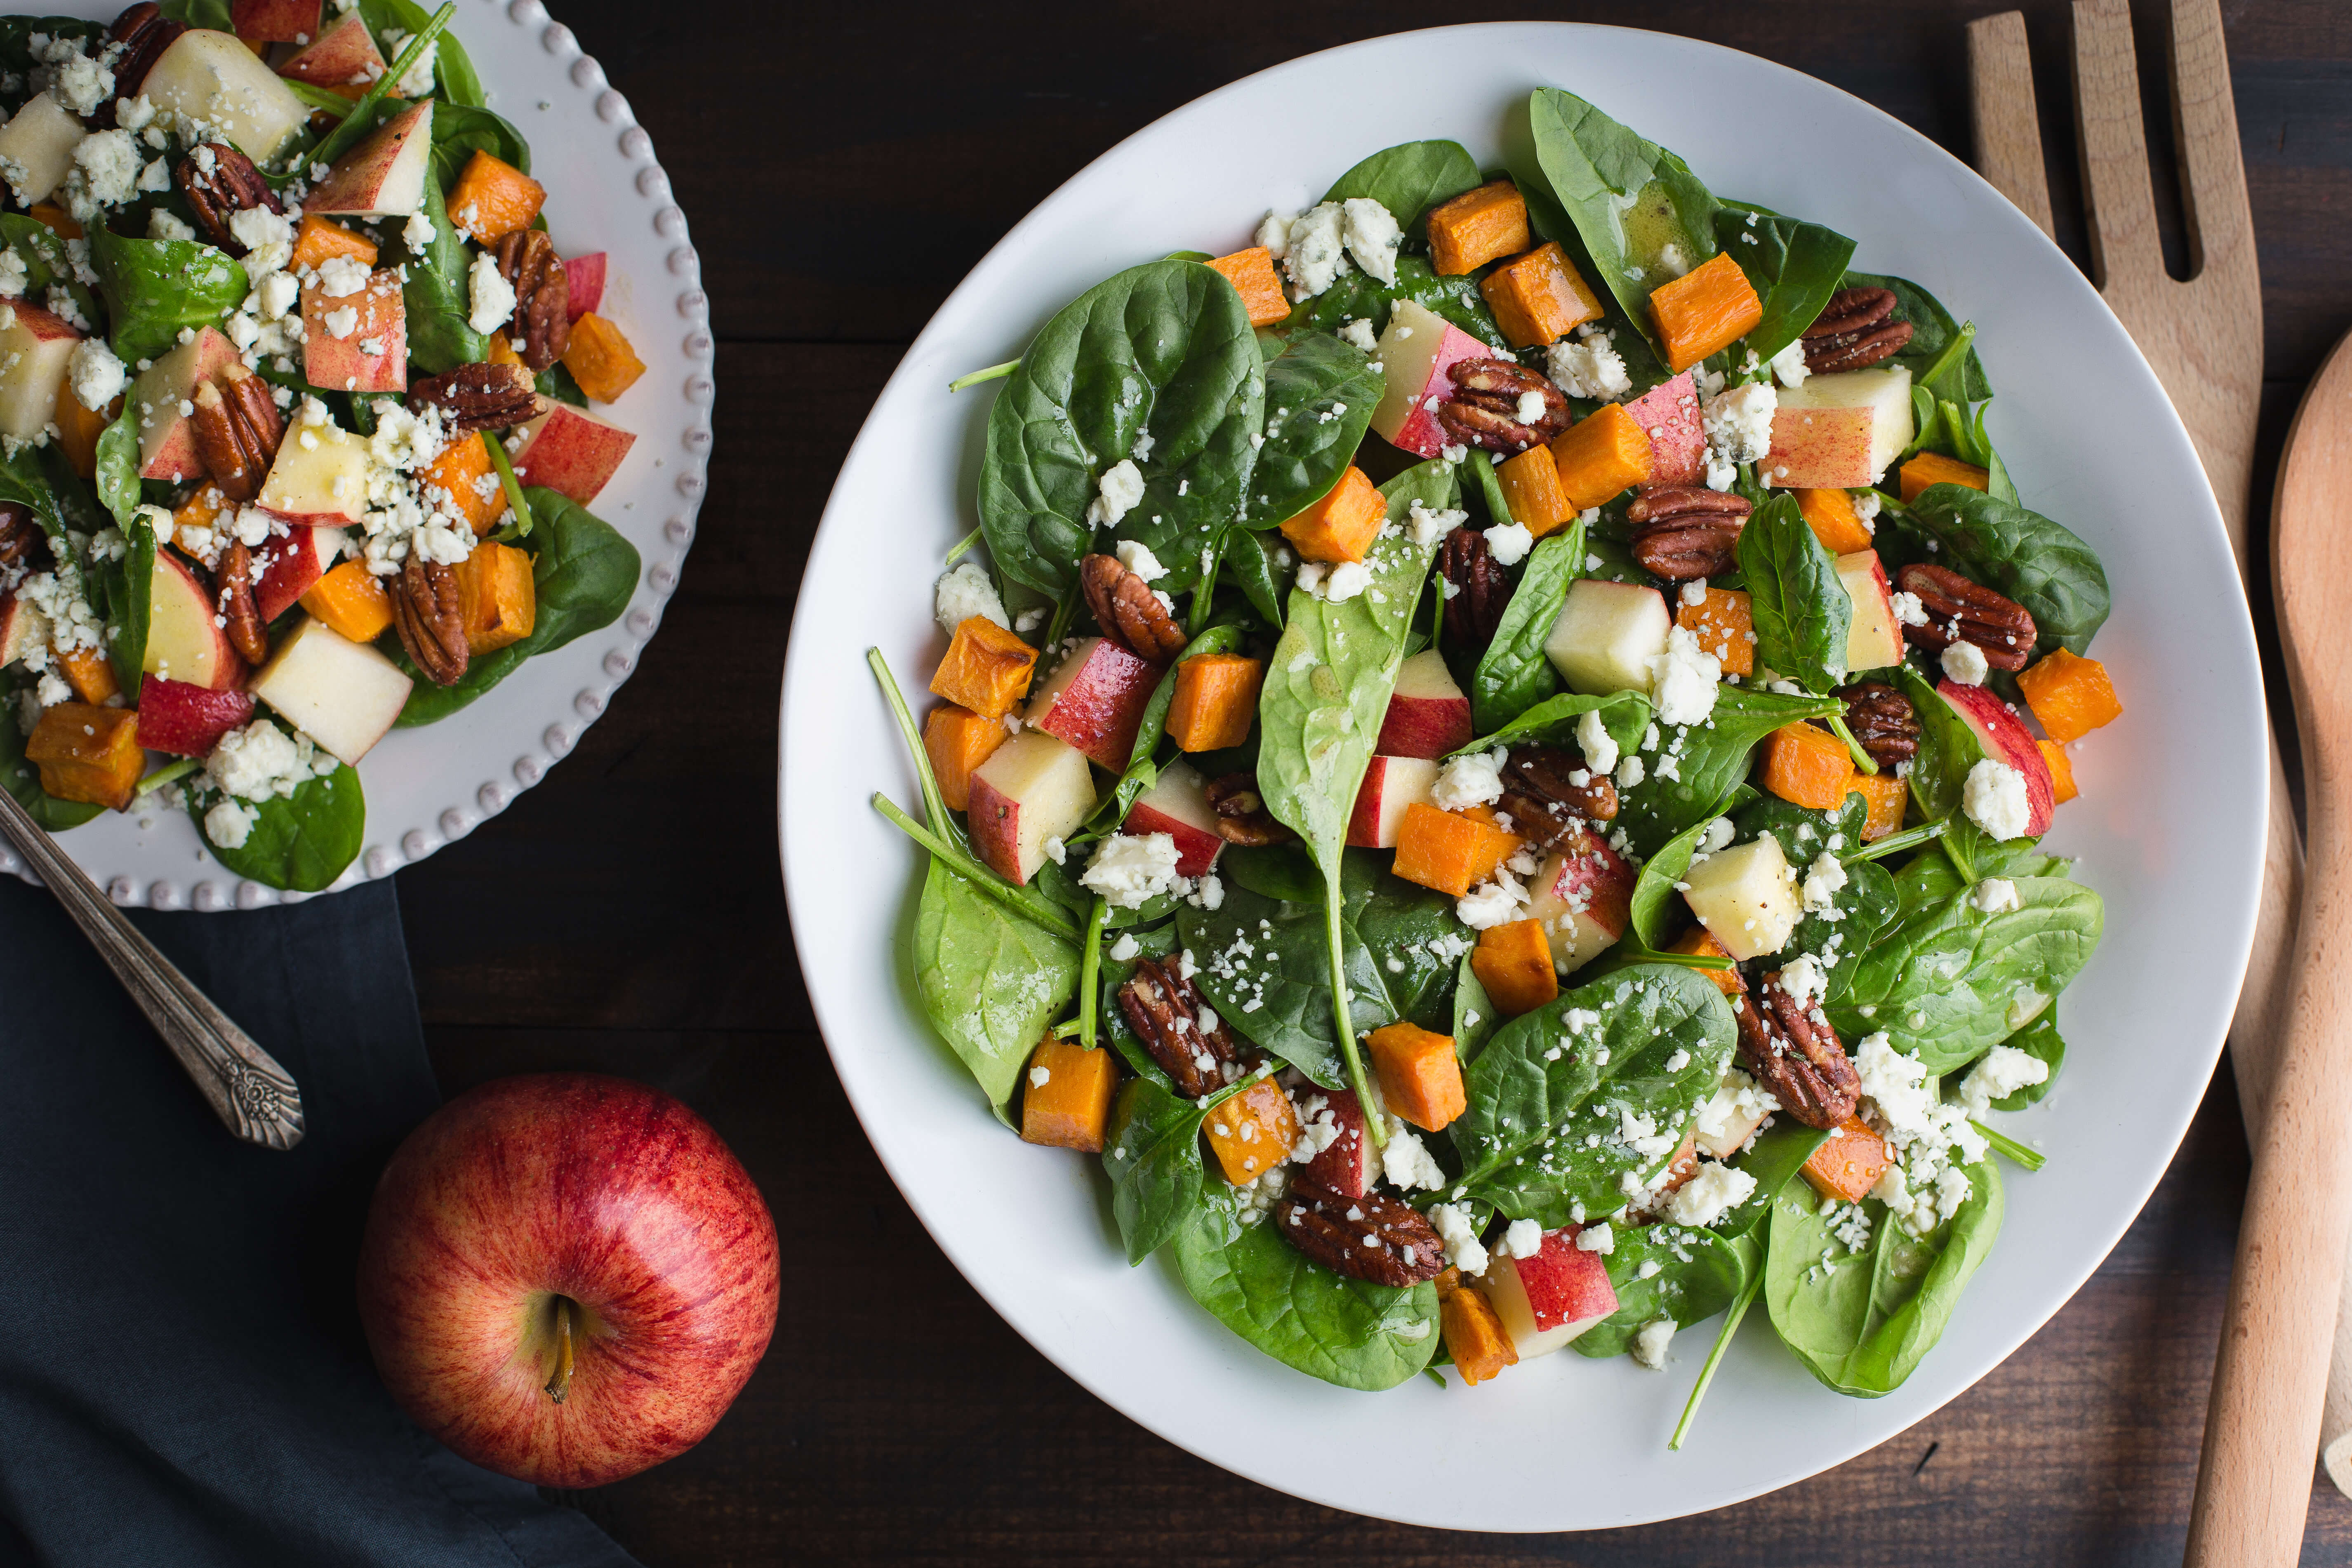 Spinach Salad with Roasted Sweet Potatoes and Apple